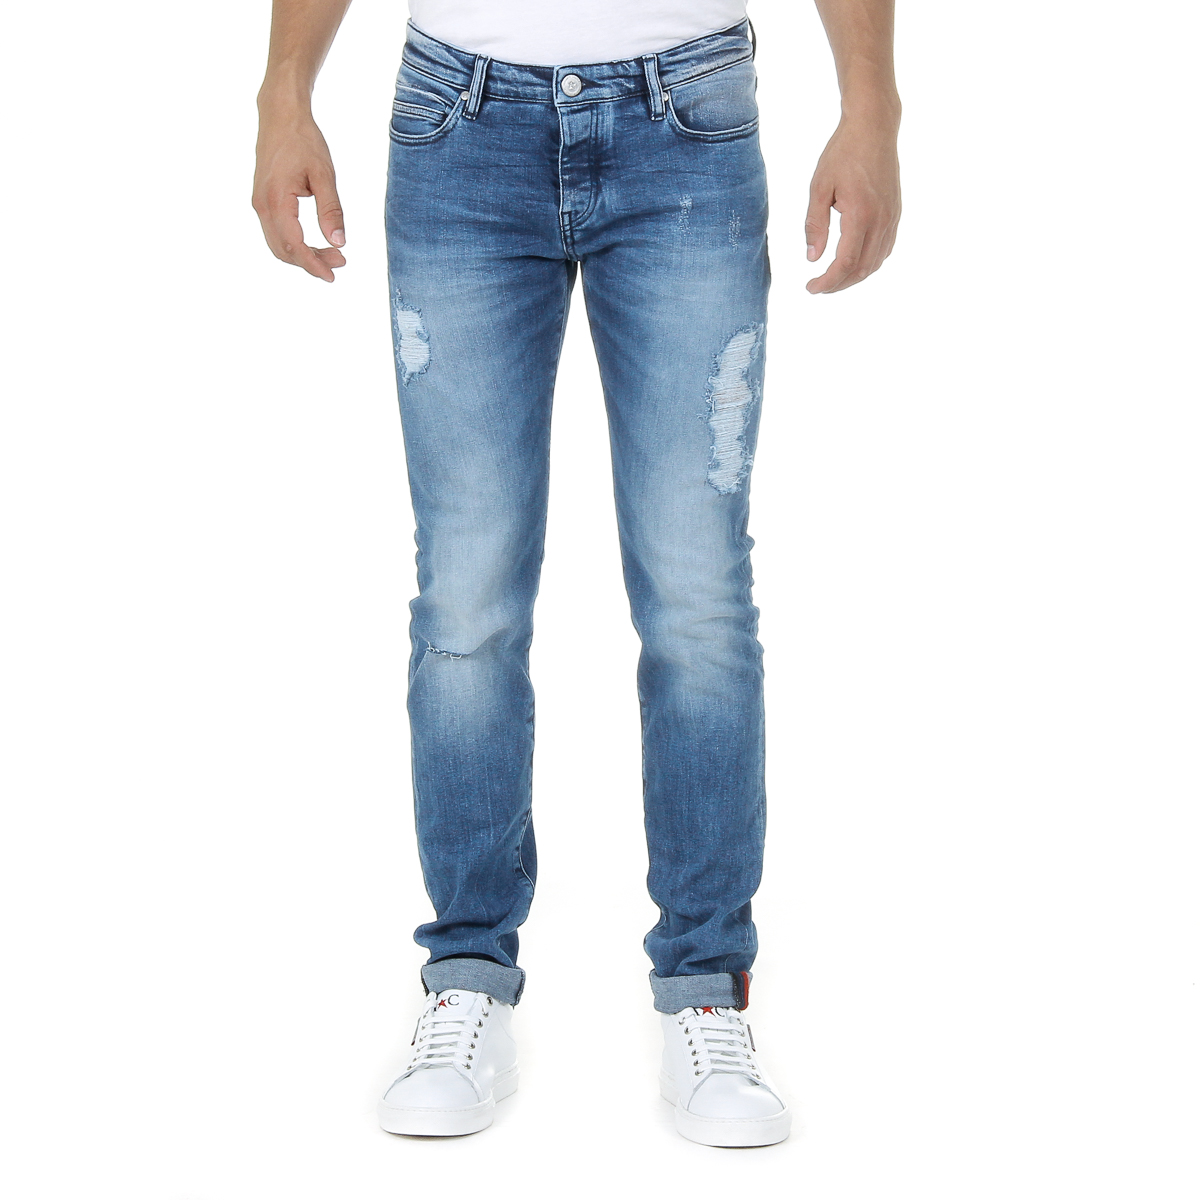 Primary image for Andrew Charles Mens Jeans Denim JAN